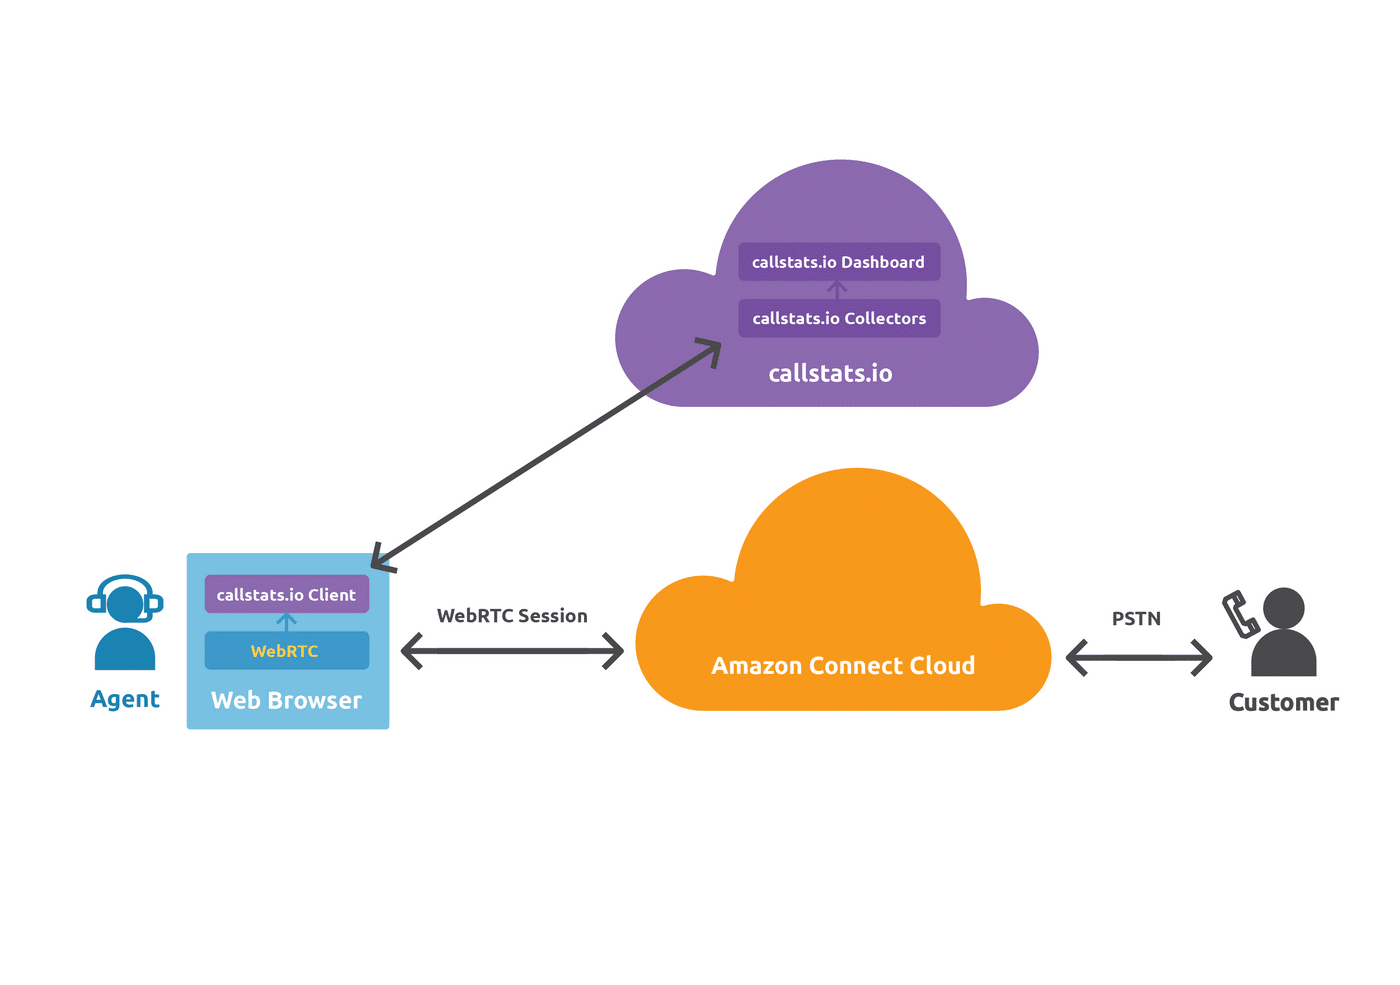 Infographic explaining the architecture of amazon connect